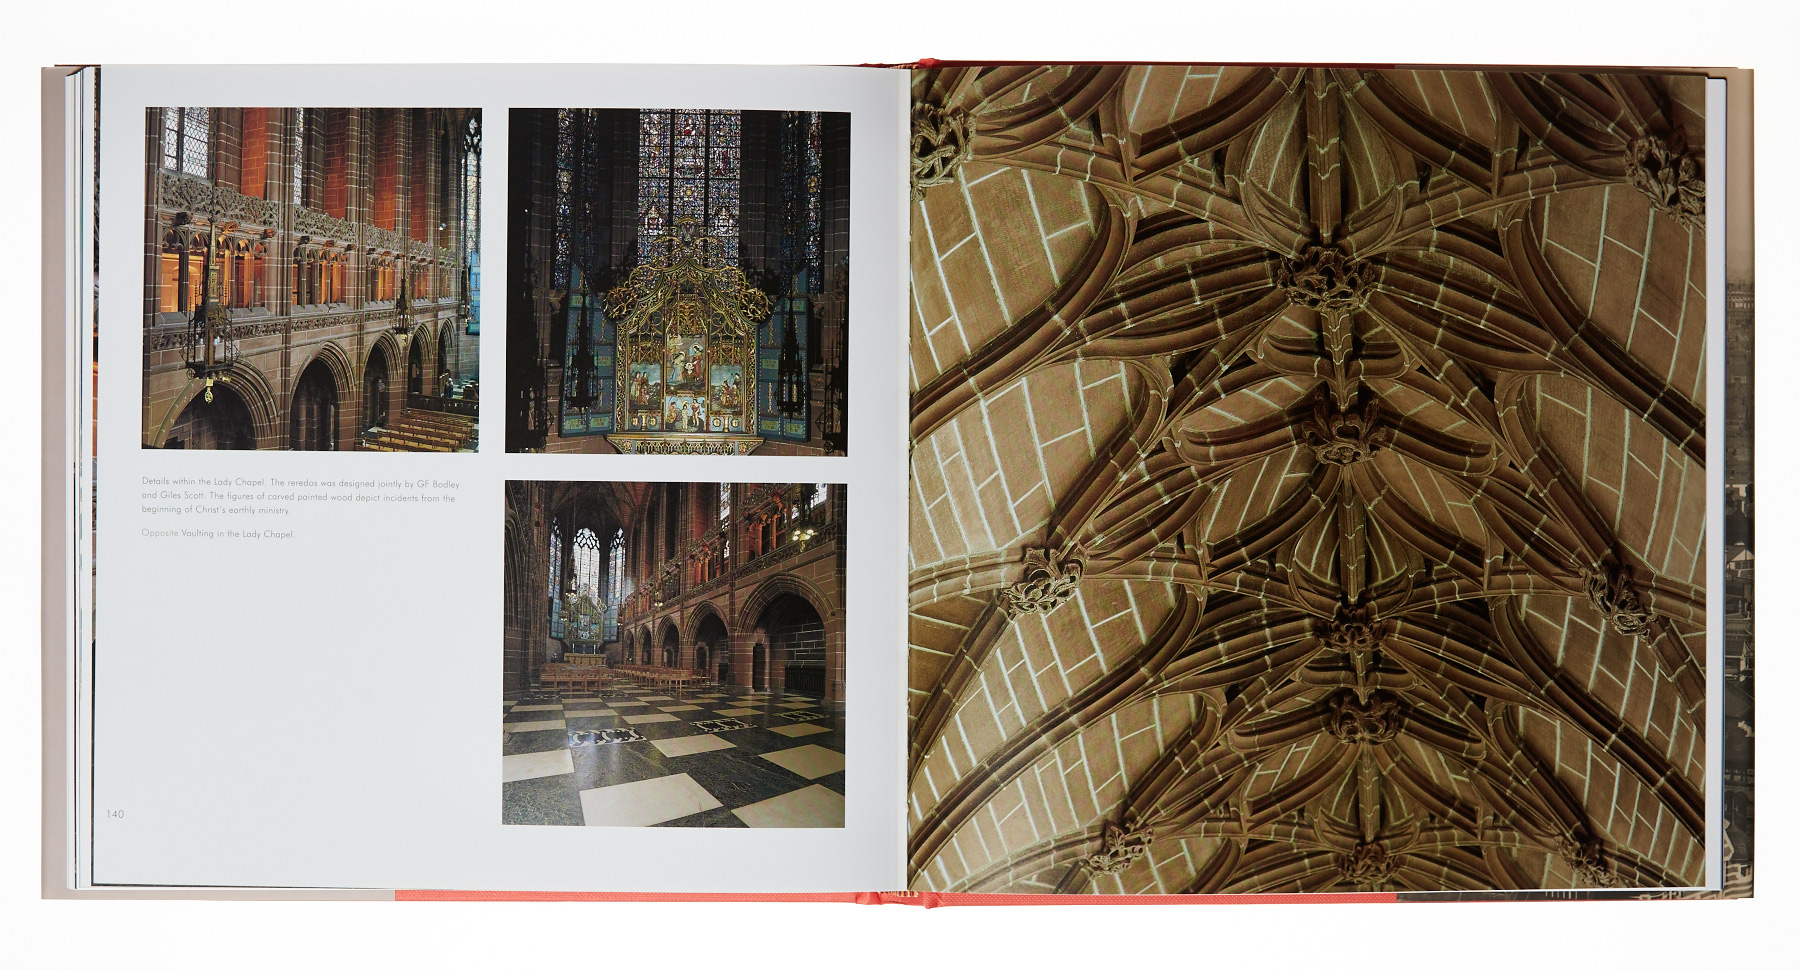 liverpool-cathedral-book-page-140.jpg